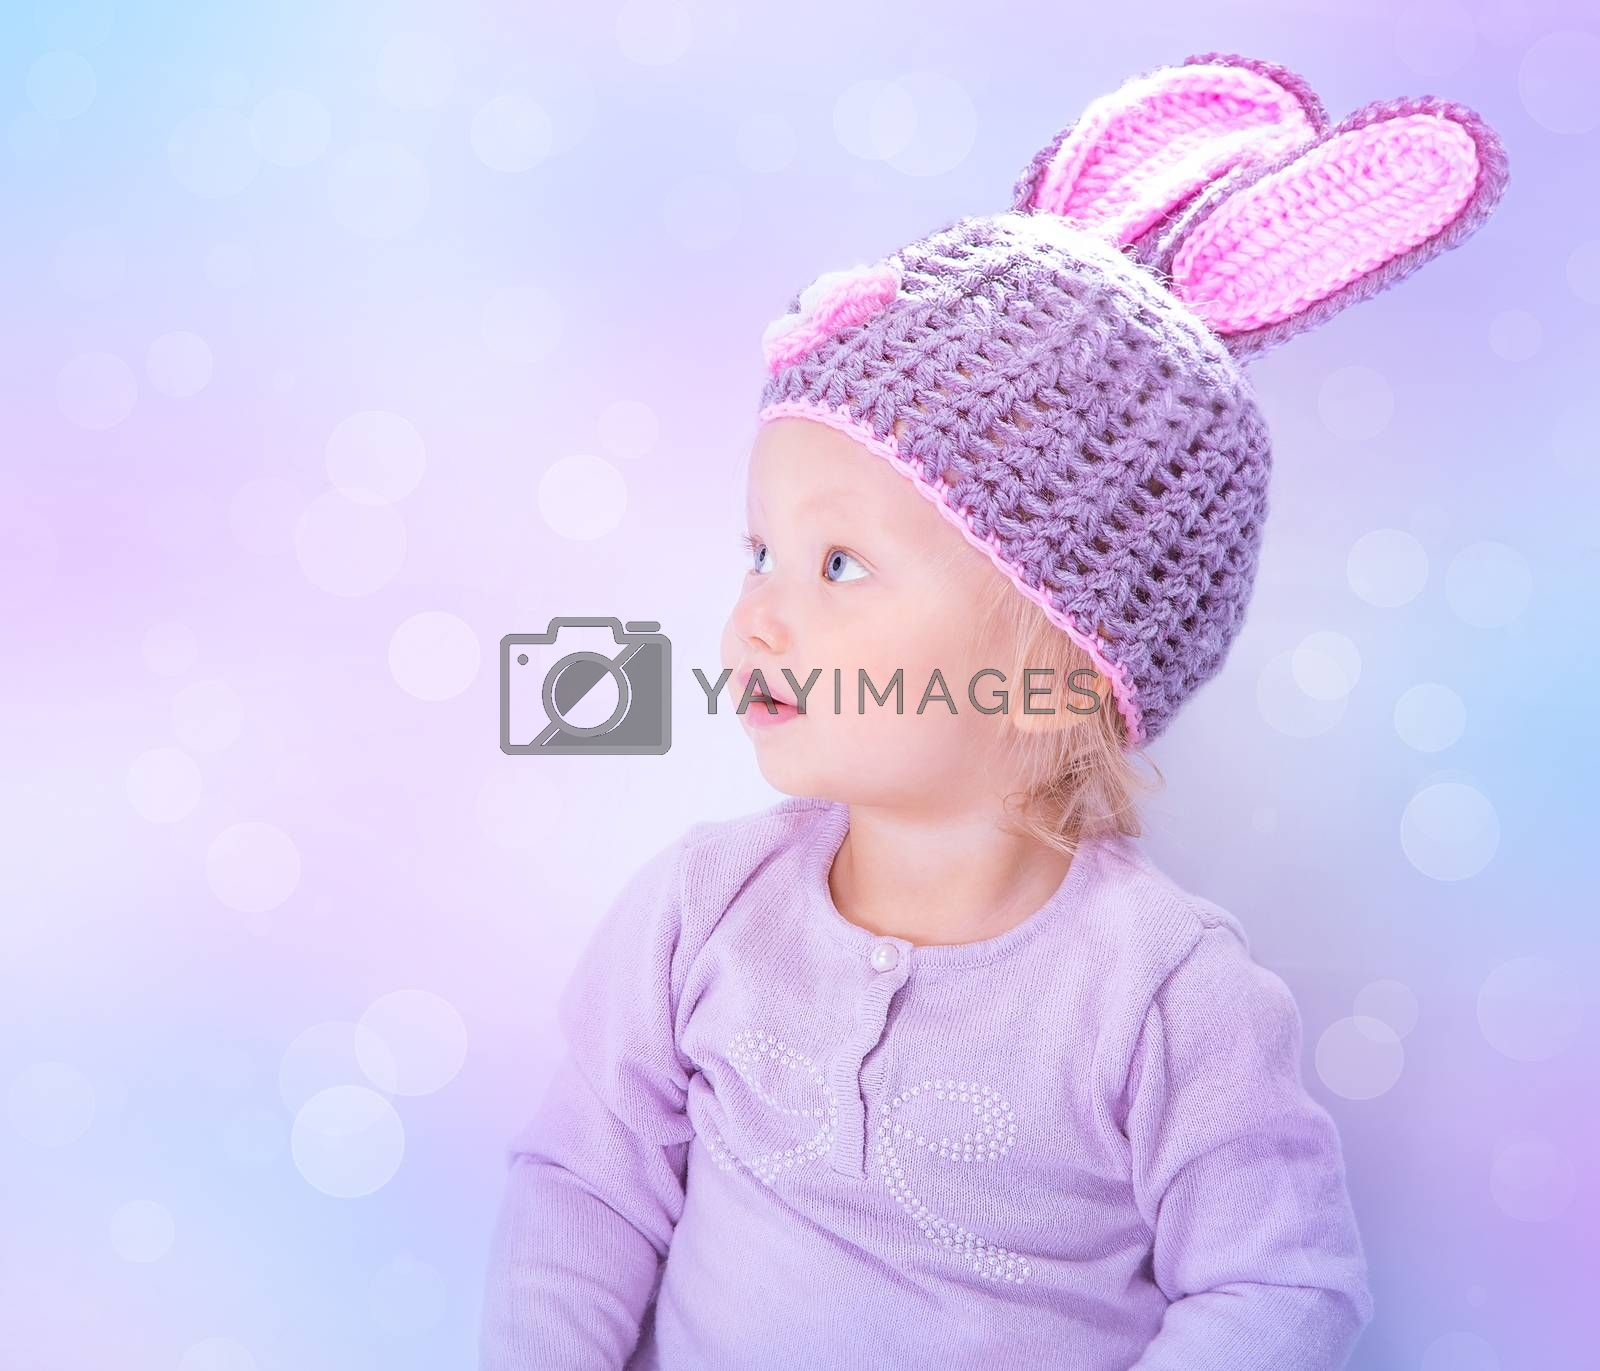 Portrait of cute Easter bunny isolated on blur background, sweet little baby wearing purple hat with rabbit ears, celebrating religious holiday